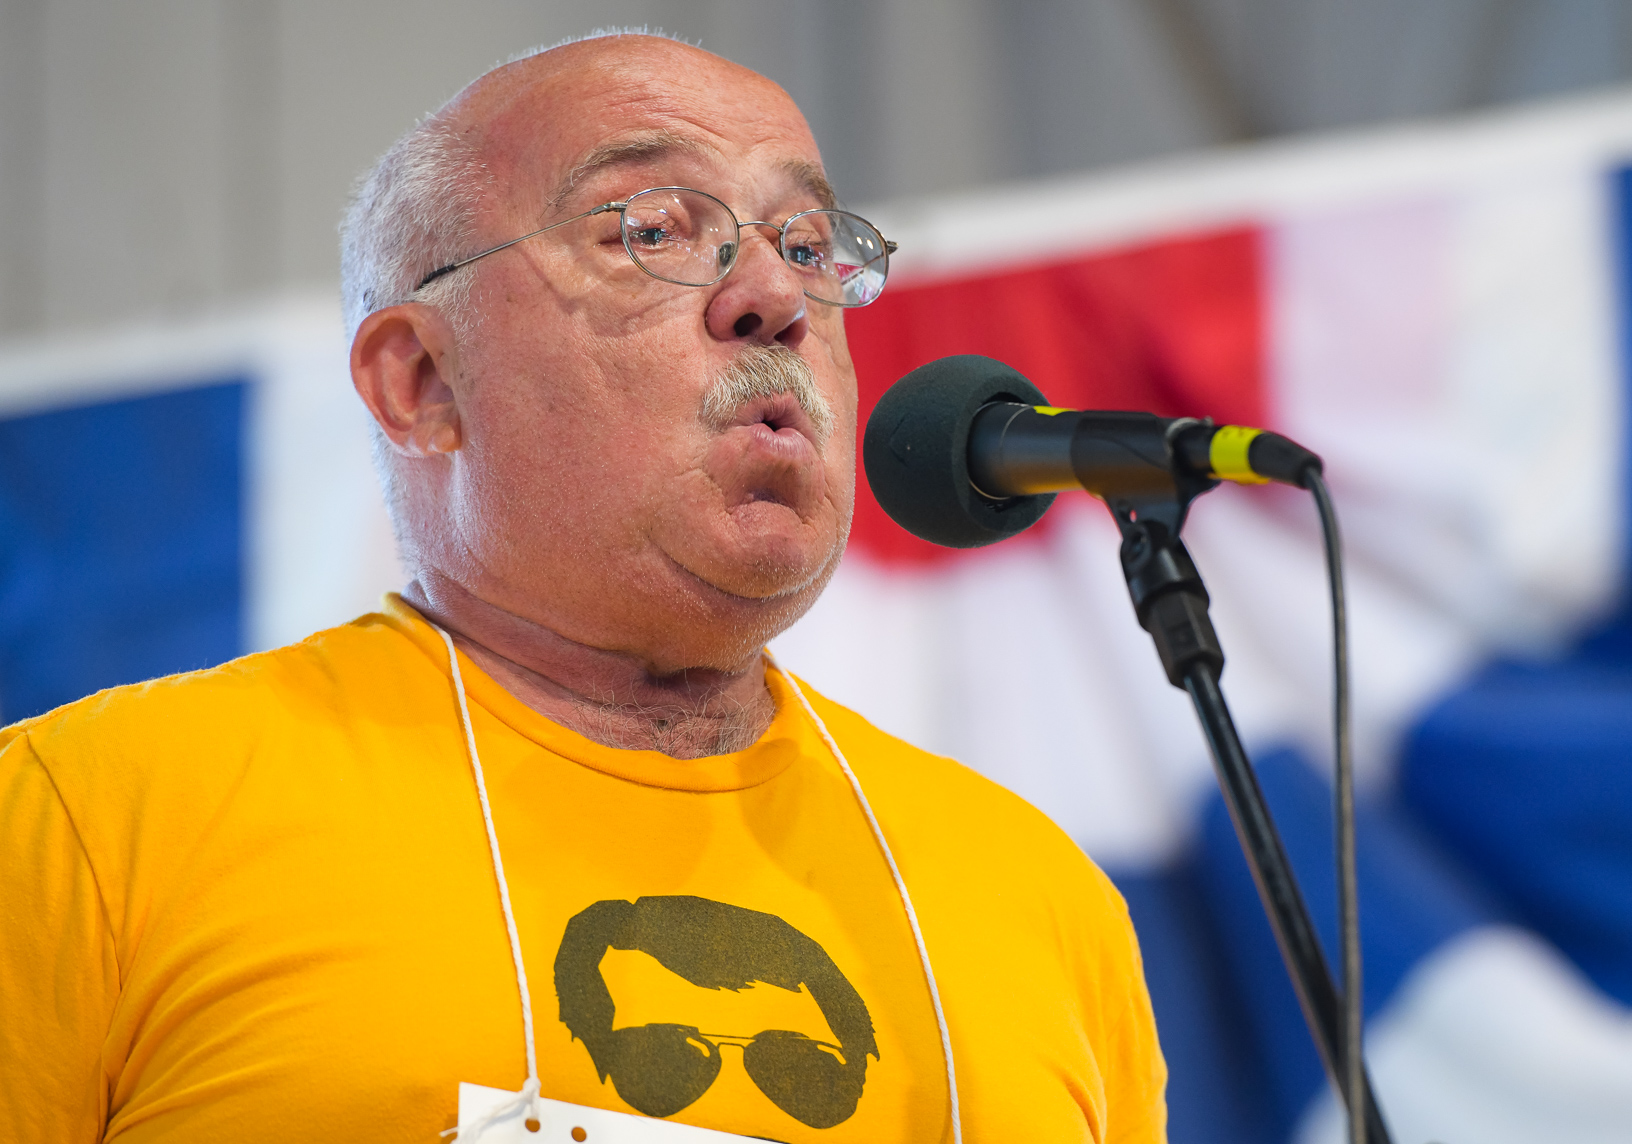 A man competes in the whistling contest at the Iowa State Fair. Photo credit: Joseph L. Murphy/Iowa Soybean Association